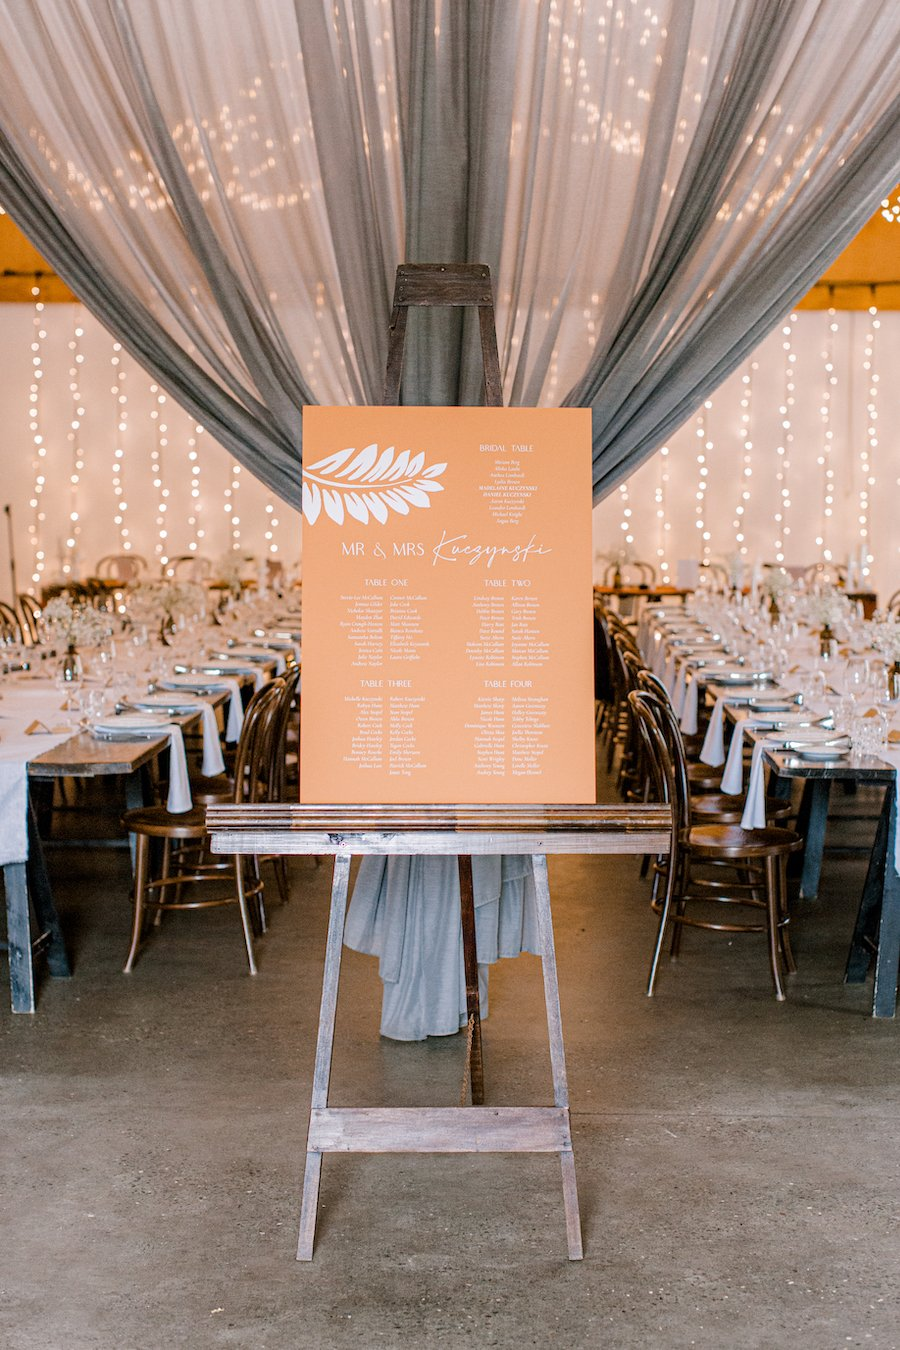 wedding signage for guest seating chart